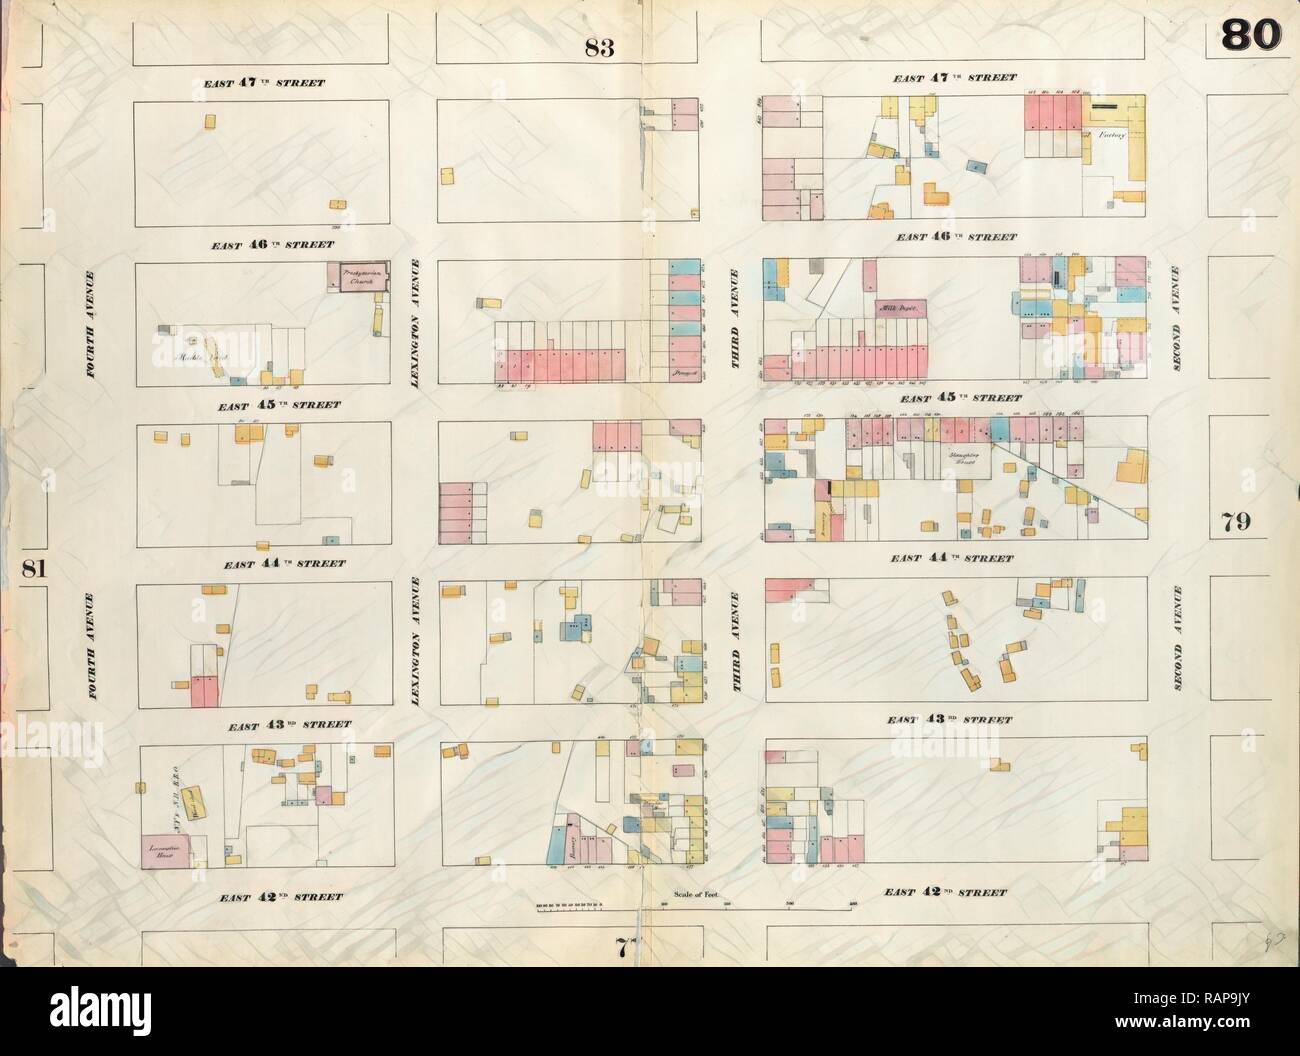 Plate 80: Map bounded by East 47th Street, Second Avenue, East 42nd Street, Fourth Avenue. 1857, 1862, Perris and reimagined - Stock Image